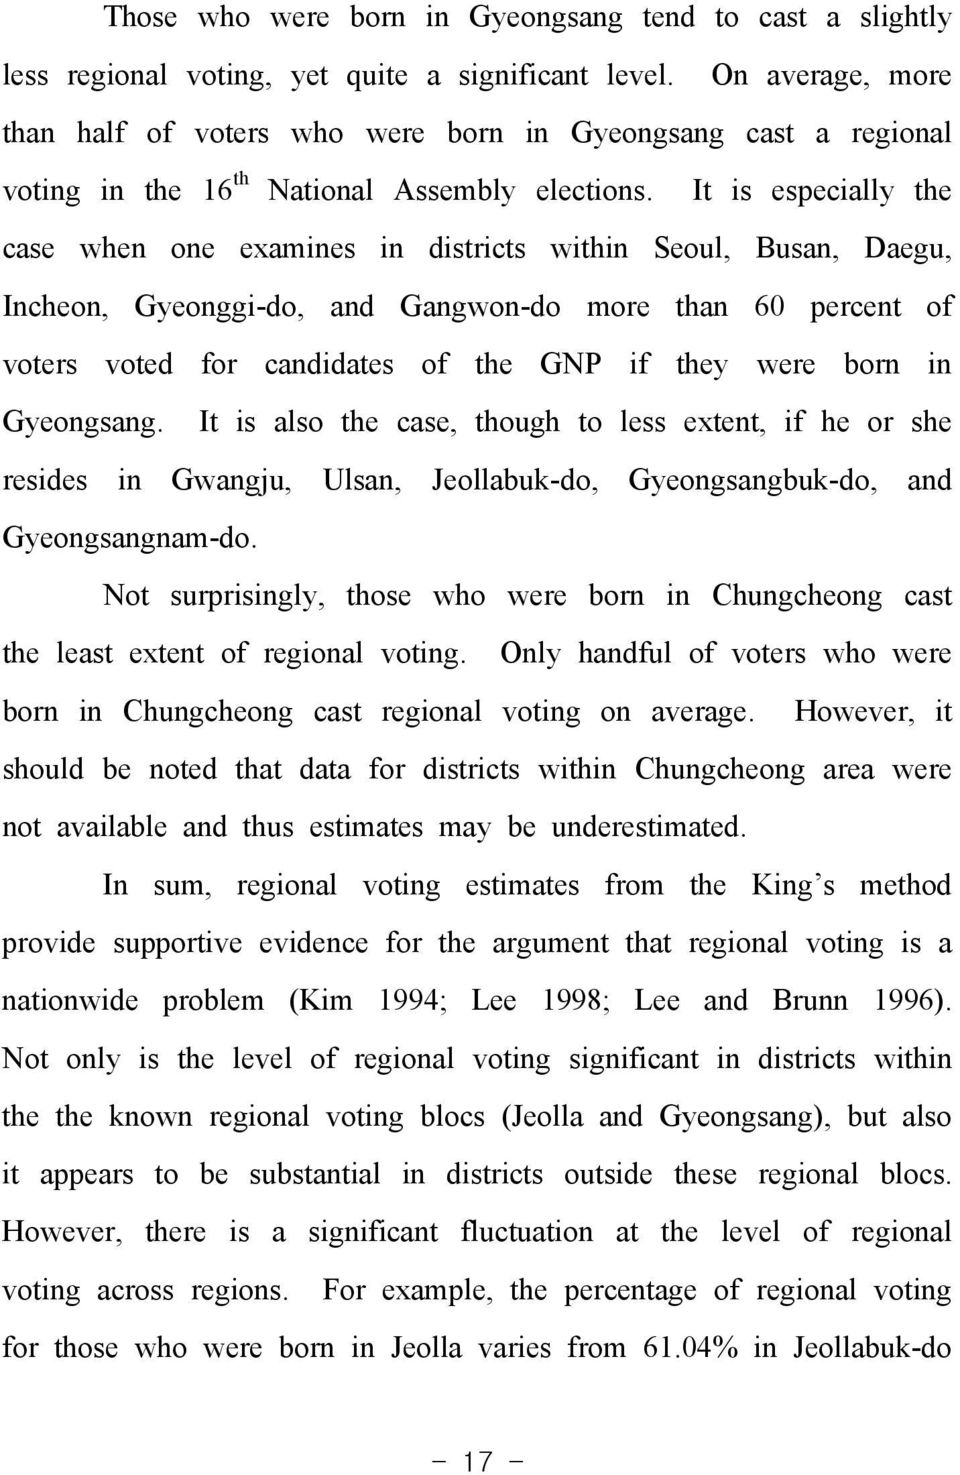 It s especally the case when one examnes n dstrcts wthn Seoul, Busan, Daegu, Incheon, Gyeongg-do, and Gangwon-do more than 60 percent of voters voted for canddates of the GNP f they were born n